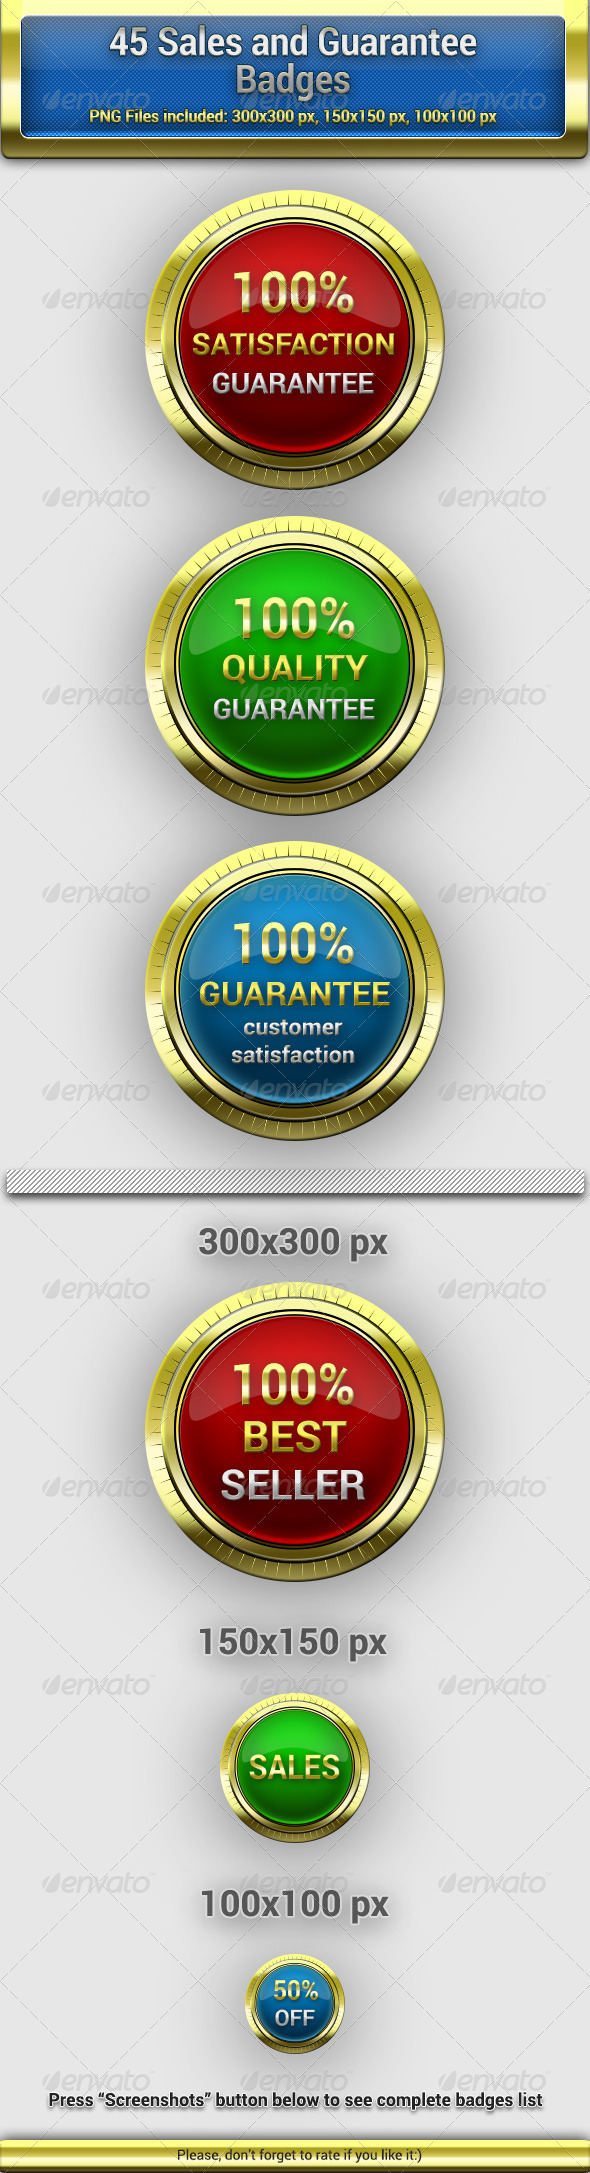 GraphicRiver 45 Sales and Guarantee Badges 6525847